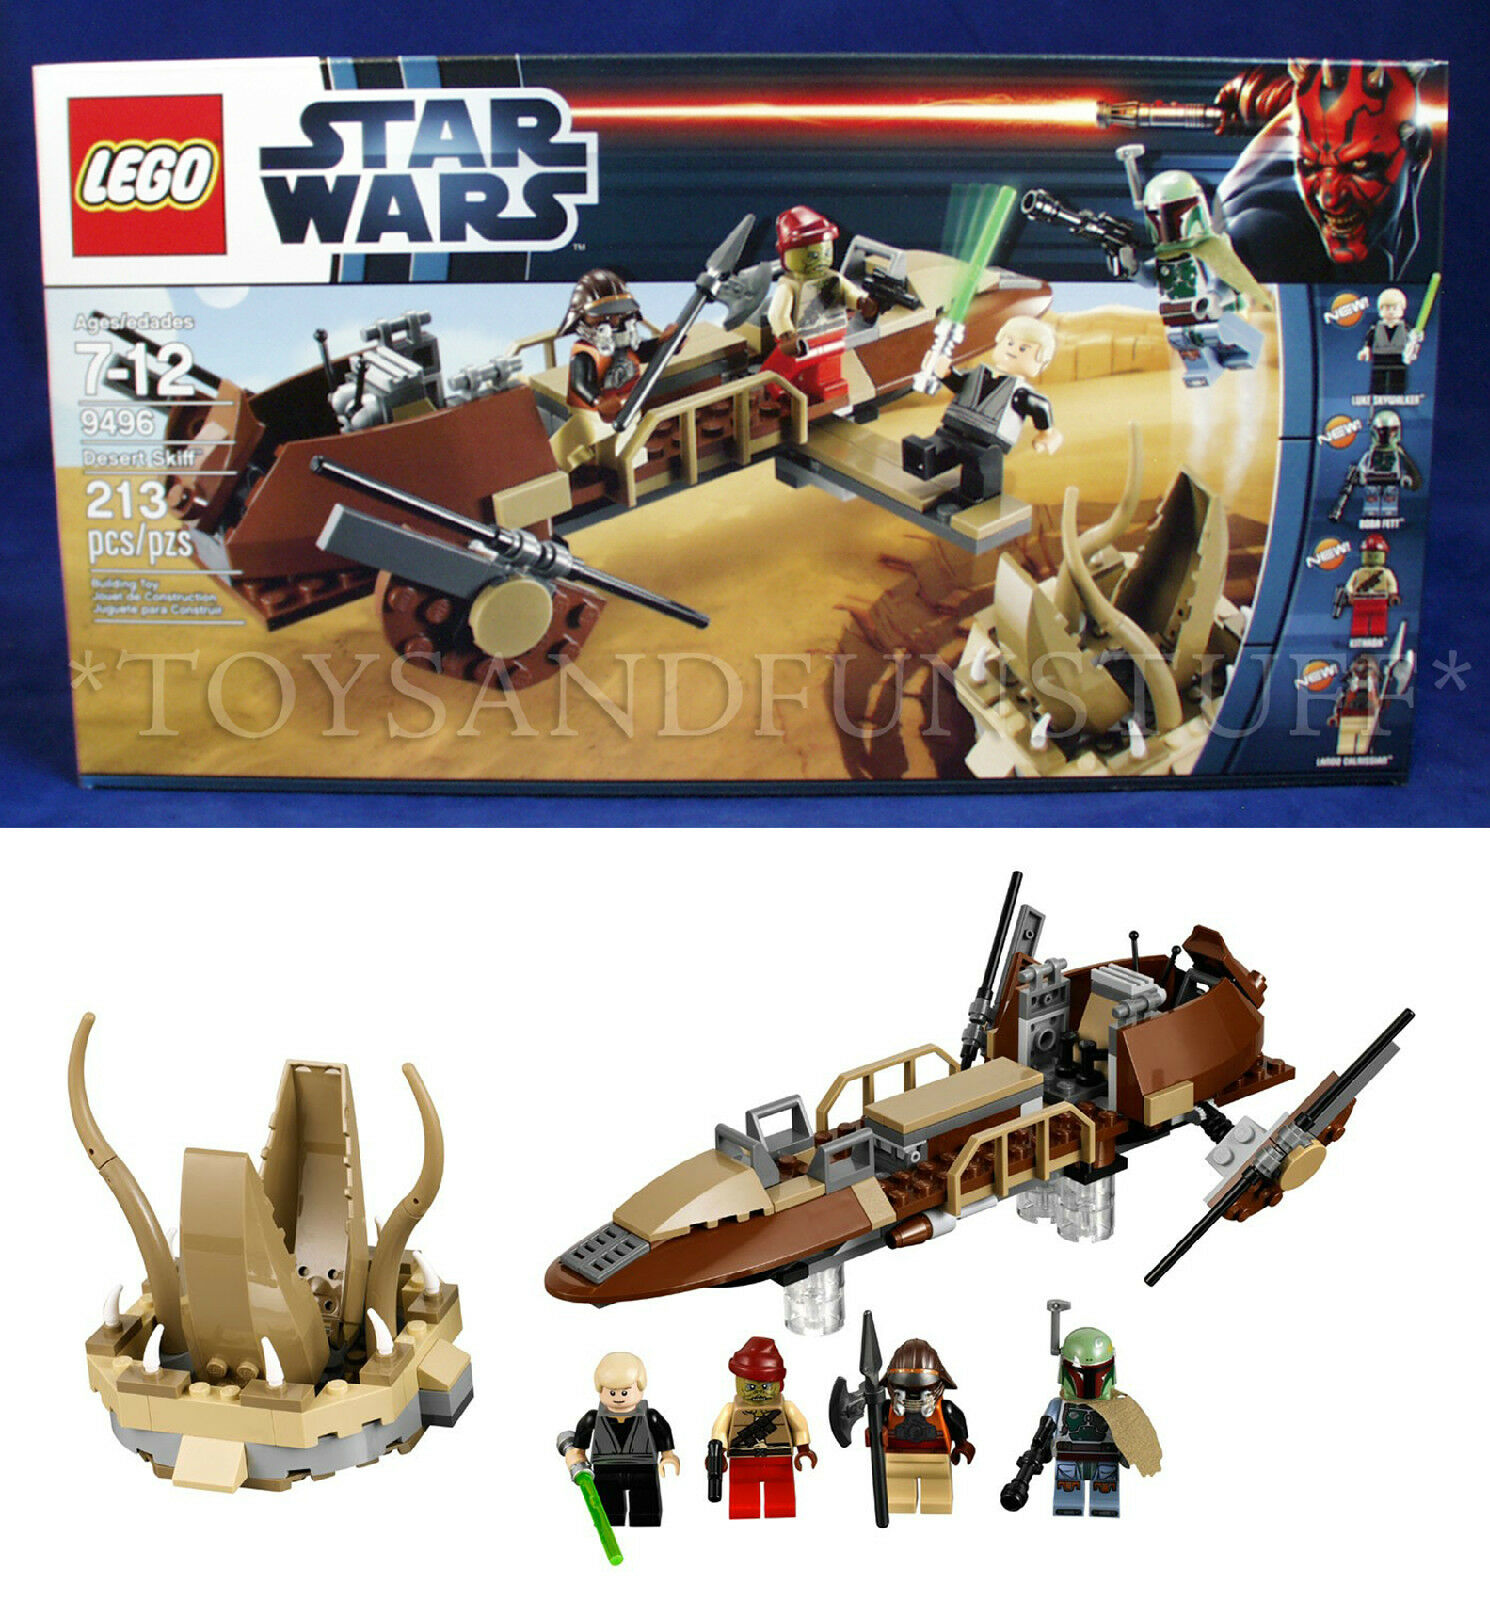 New DESERT SKIFF - STAR WARS Lego 9496 Building Set 4 Minifigures SARLACC PIT